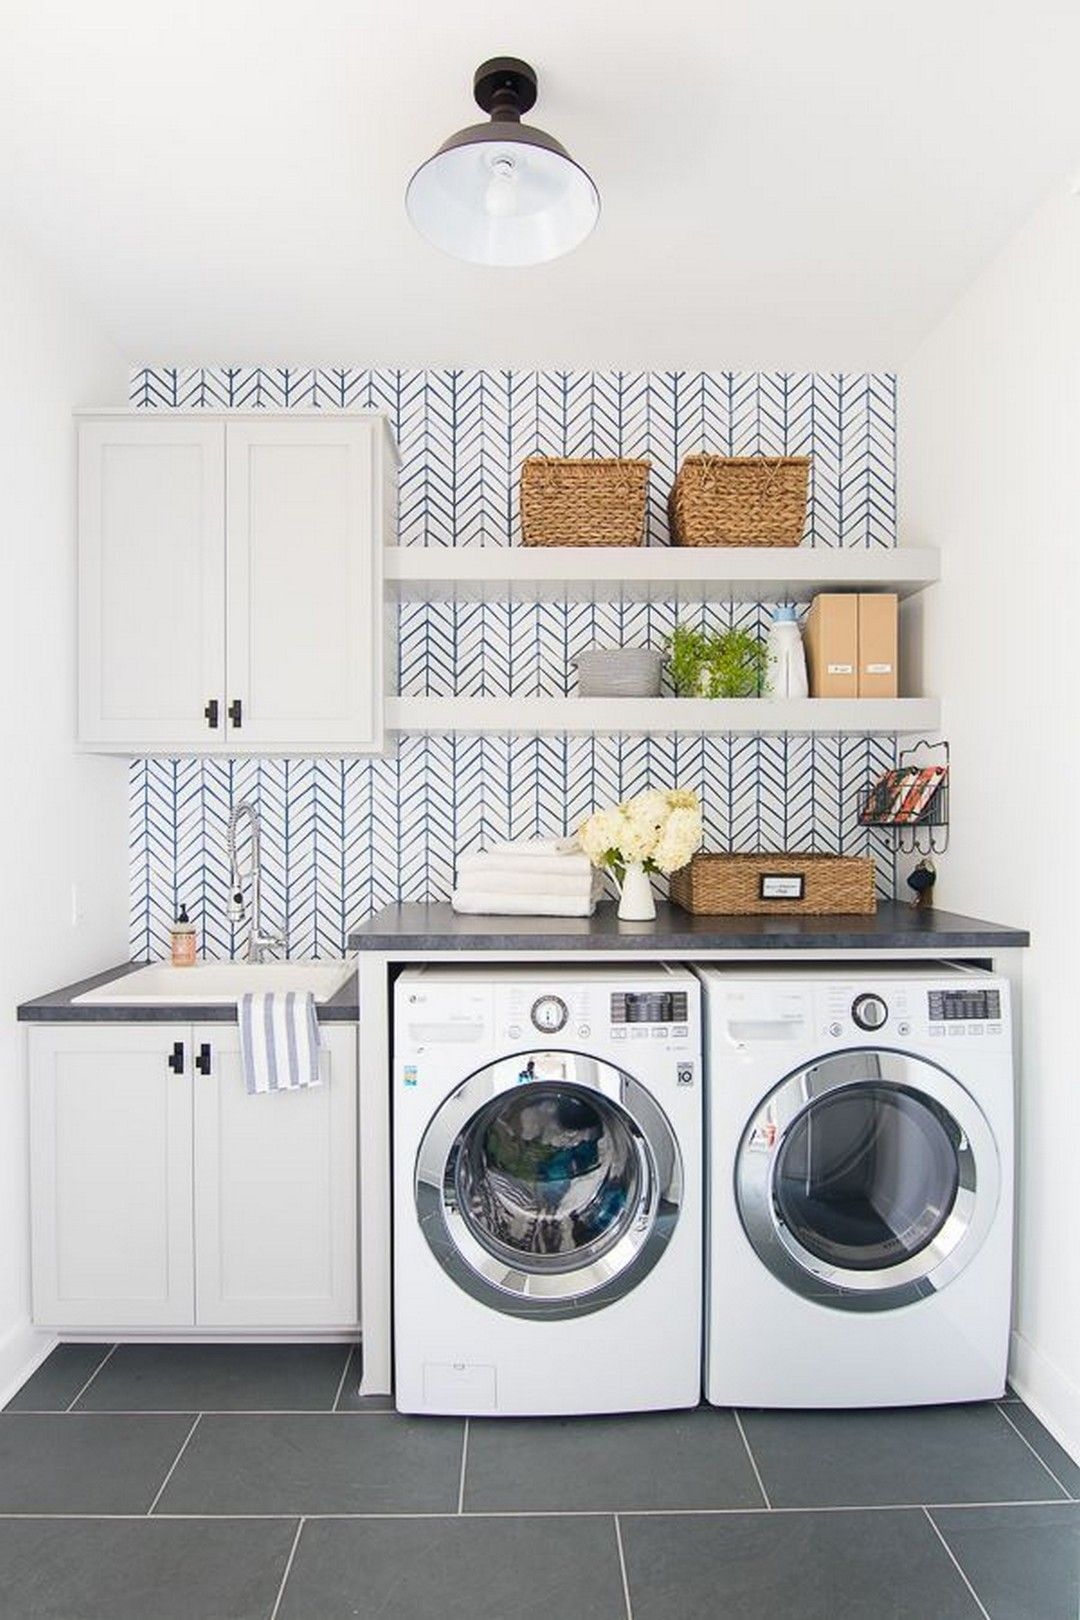 Laundry Room Decorating Ideas That Are Stylish And Functional